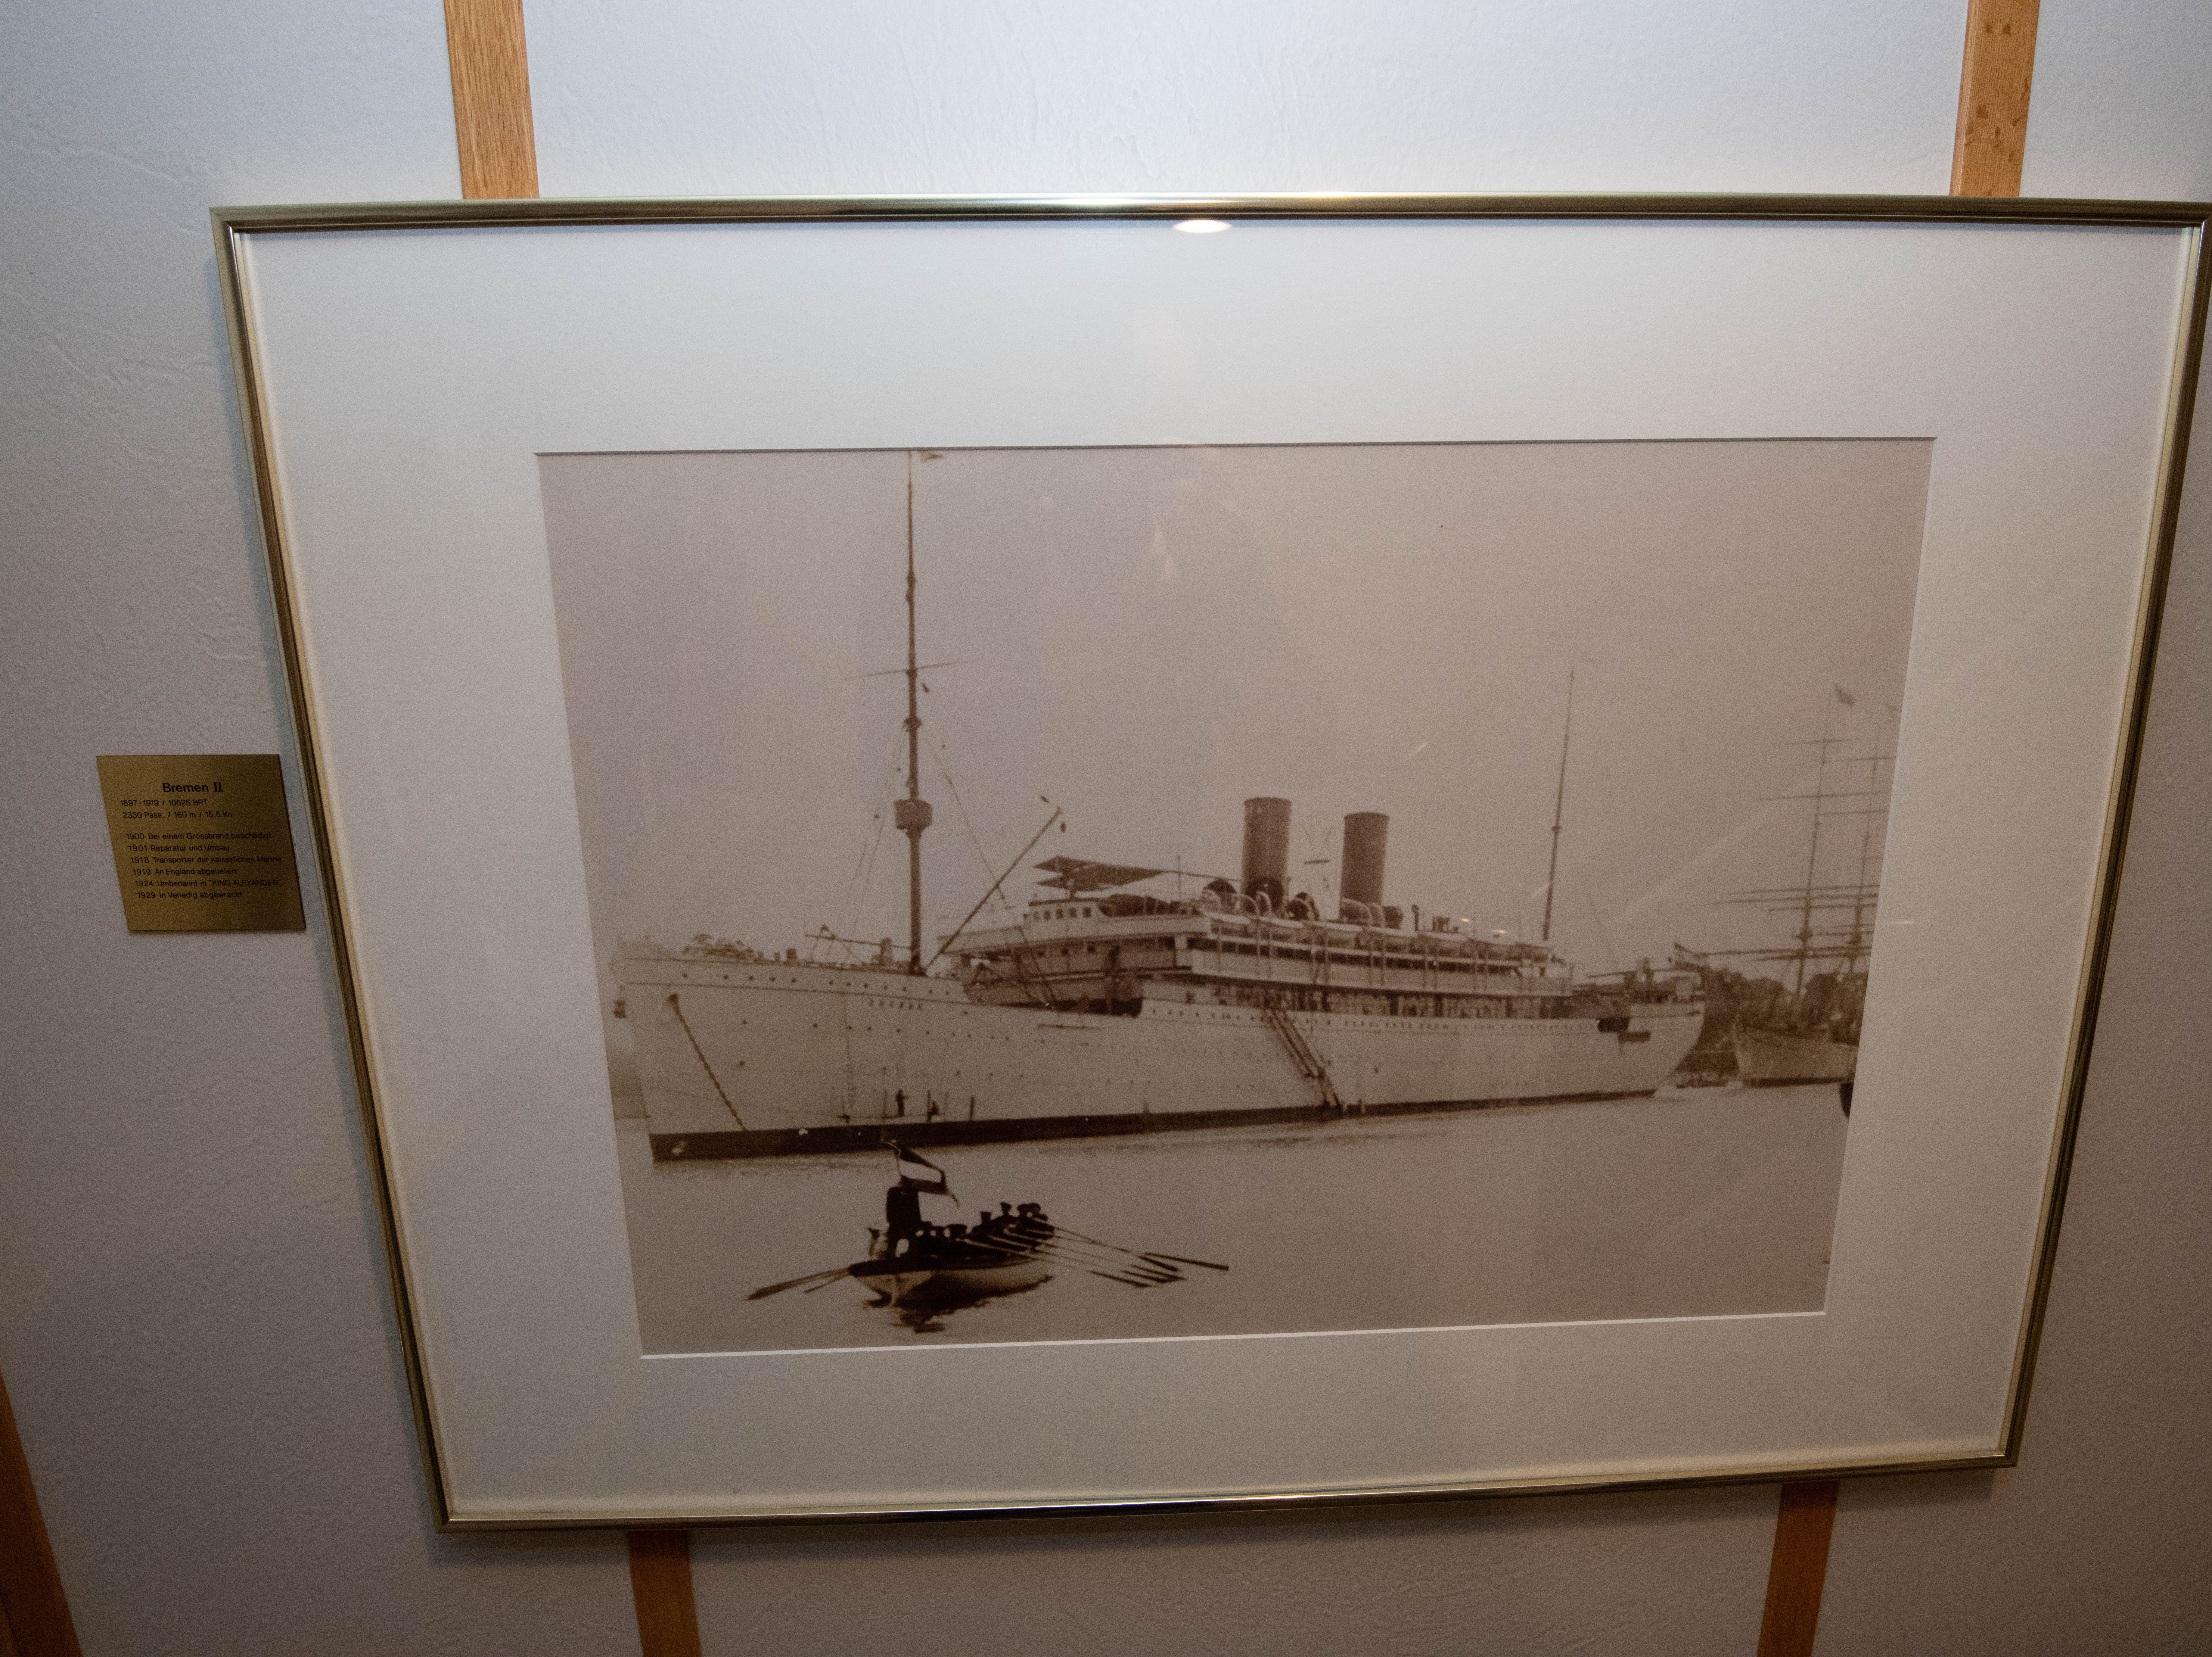 A photograph hanging in the main stairwell of Bremen shows the second ship to carry the name. Built for Norddeutscher Lloyd, this earlier Bremen was a trans-Atlantic ocean liner that sailed between Bremen, Germany and New York and also to Australia. The vessel  was laid up during World War I and later given to British line P&O line as part of war reparations.